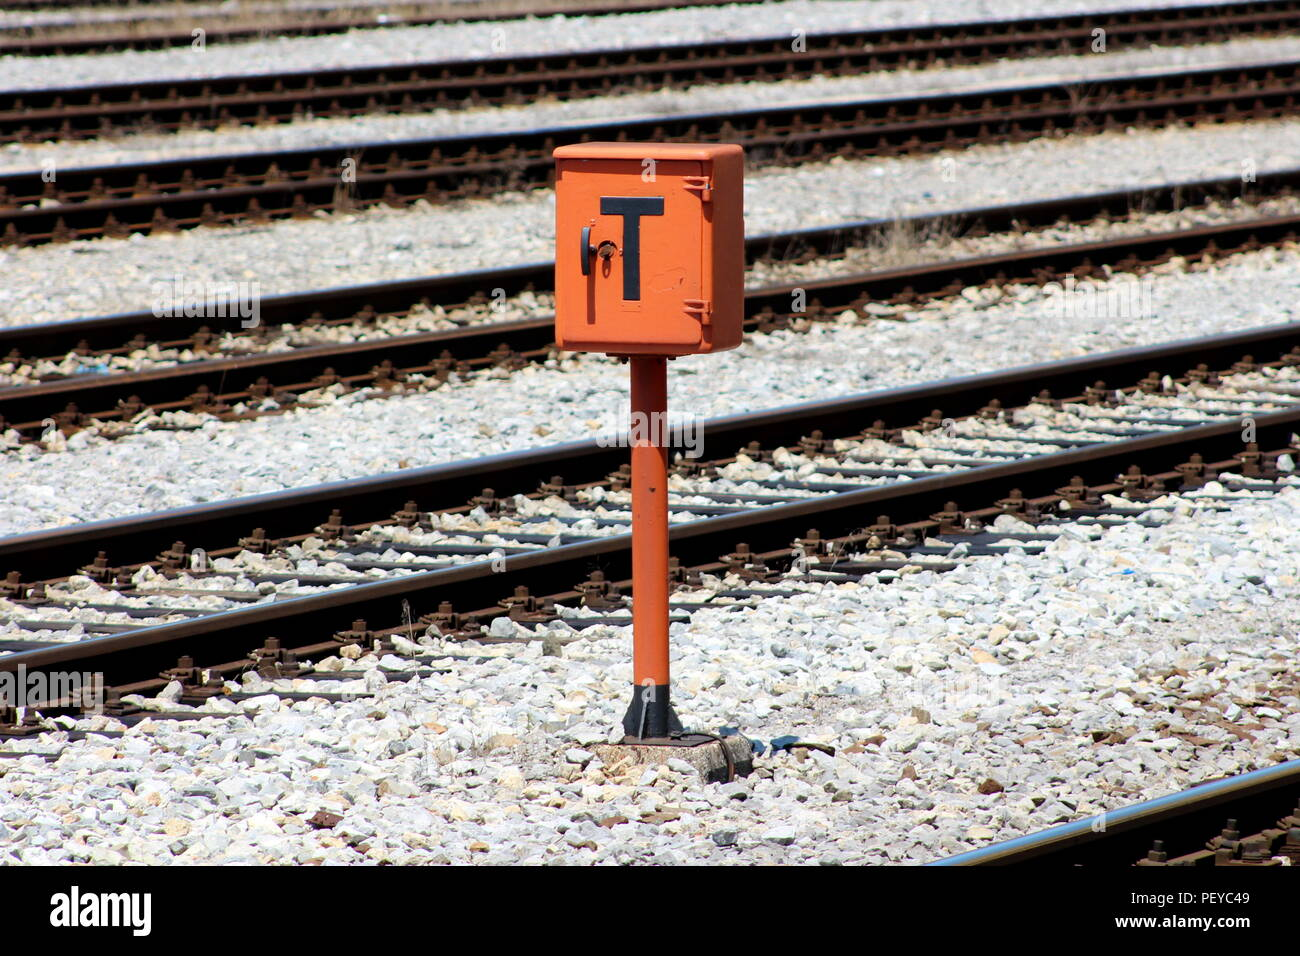 Railway trackside orange communication utility box with lock and key mounted on metal pole and positioned on gravel between railway tracks on warm sun Stock Photo